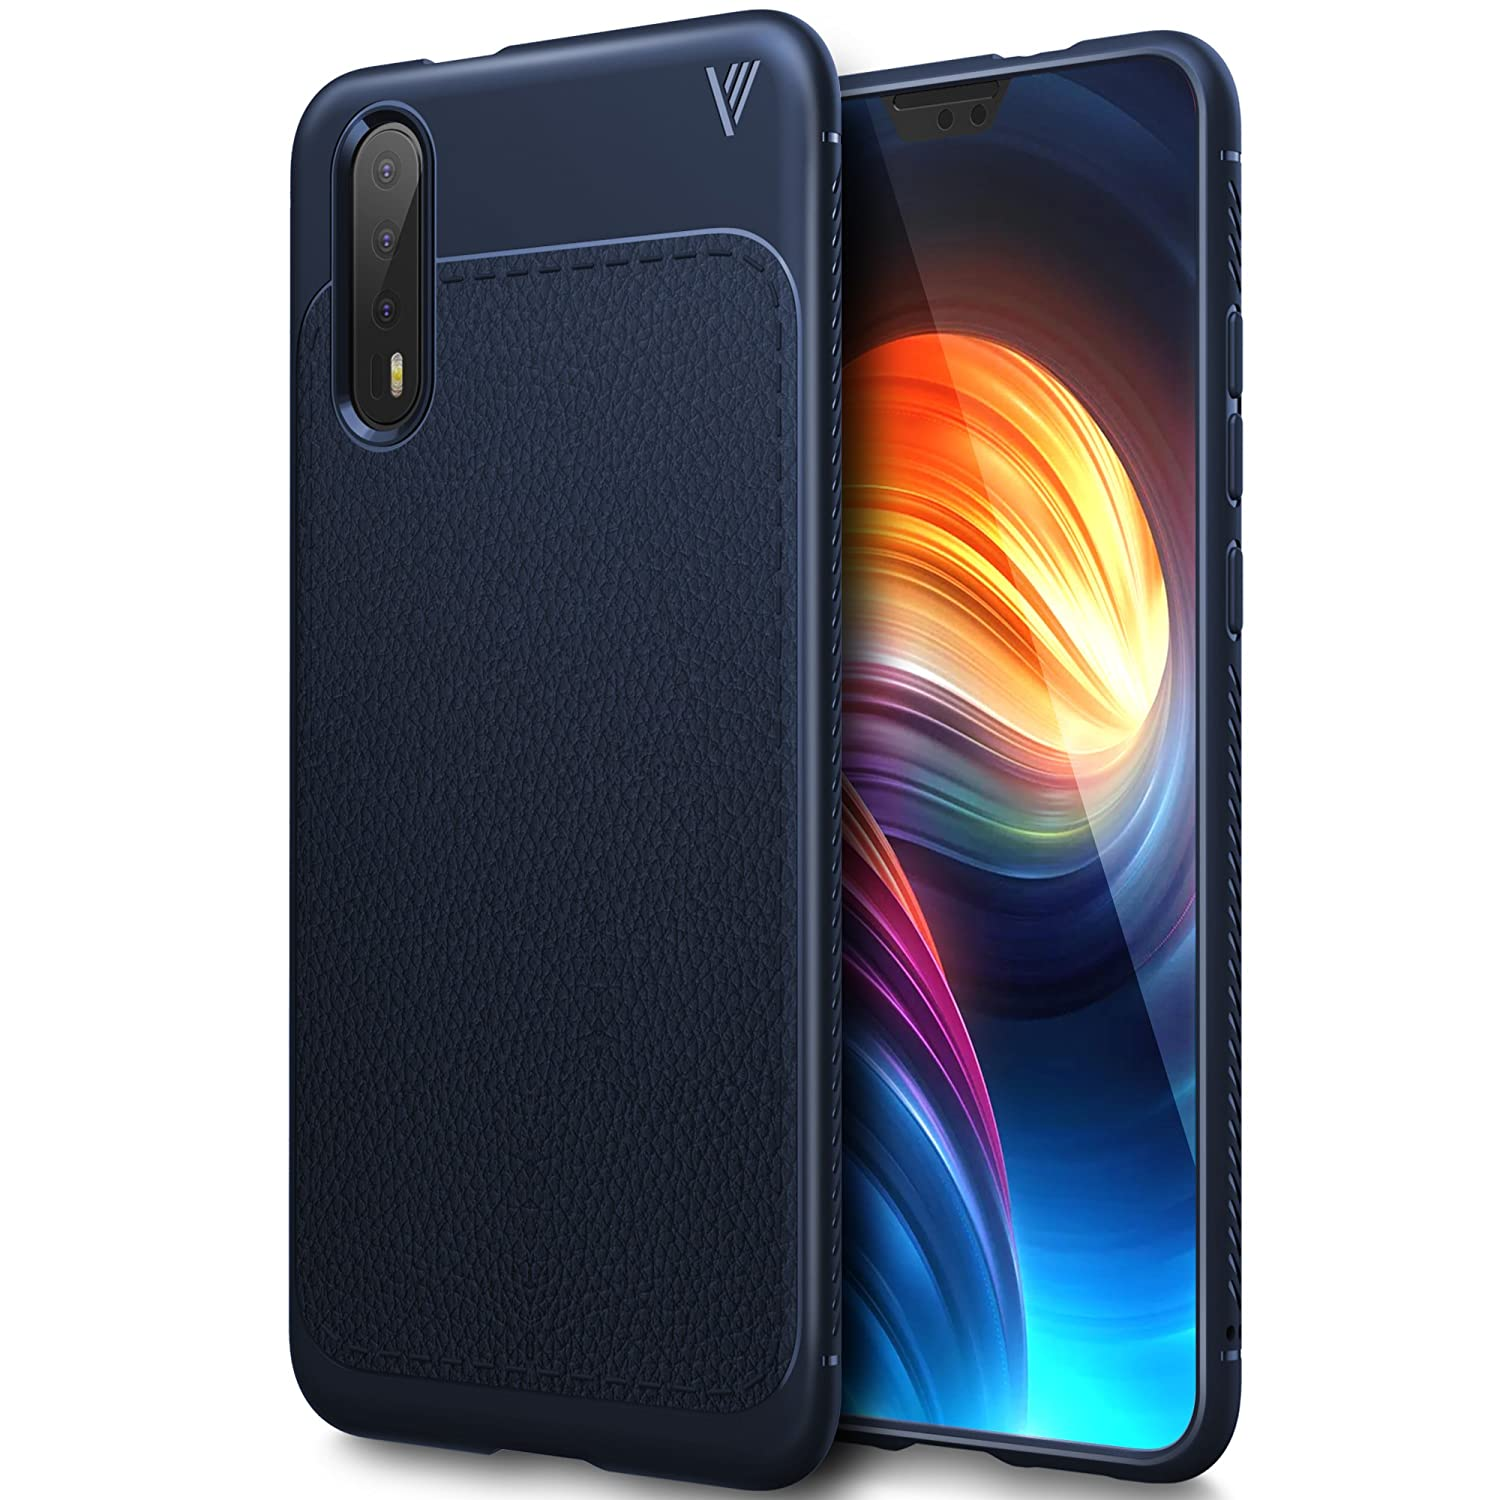 Huawei P20 case, KuGi Huawei P20 case, SS [Scratch Resistant] Premium Flexible Soft Anti Slip TPU Case for Huawei P20 Smartphone(Navy)